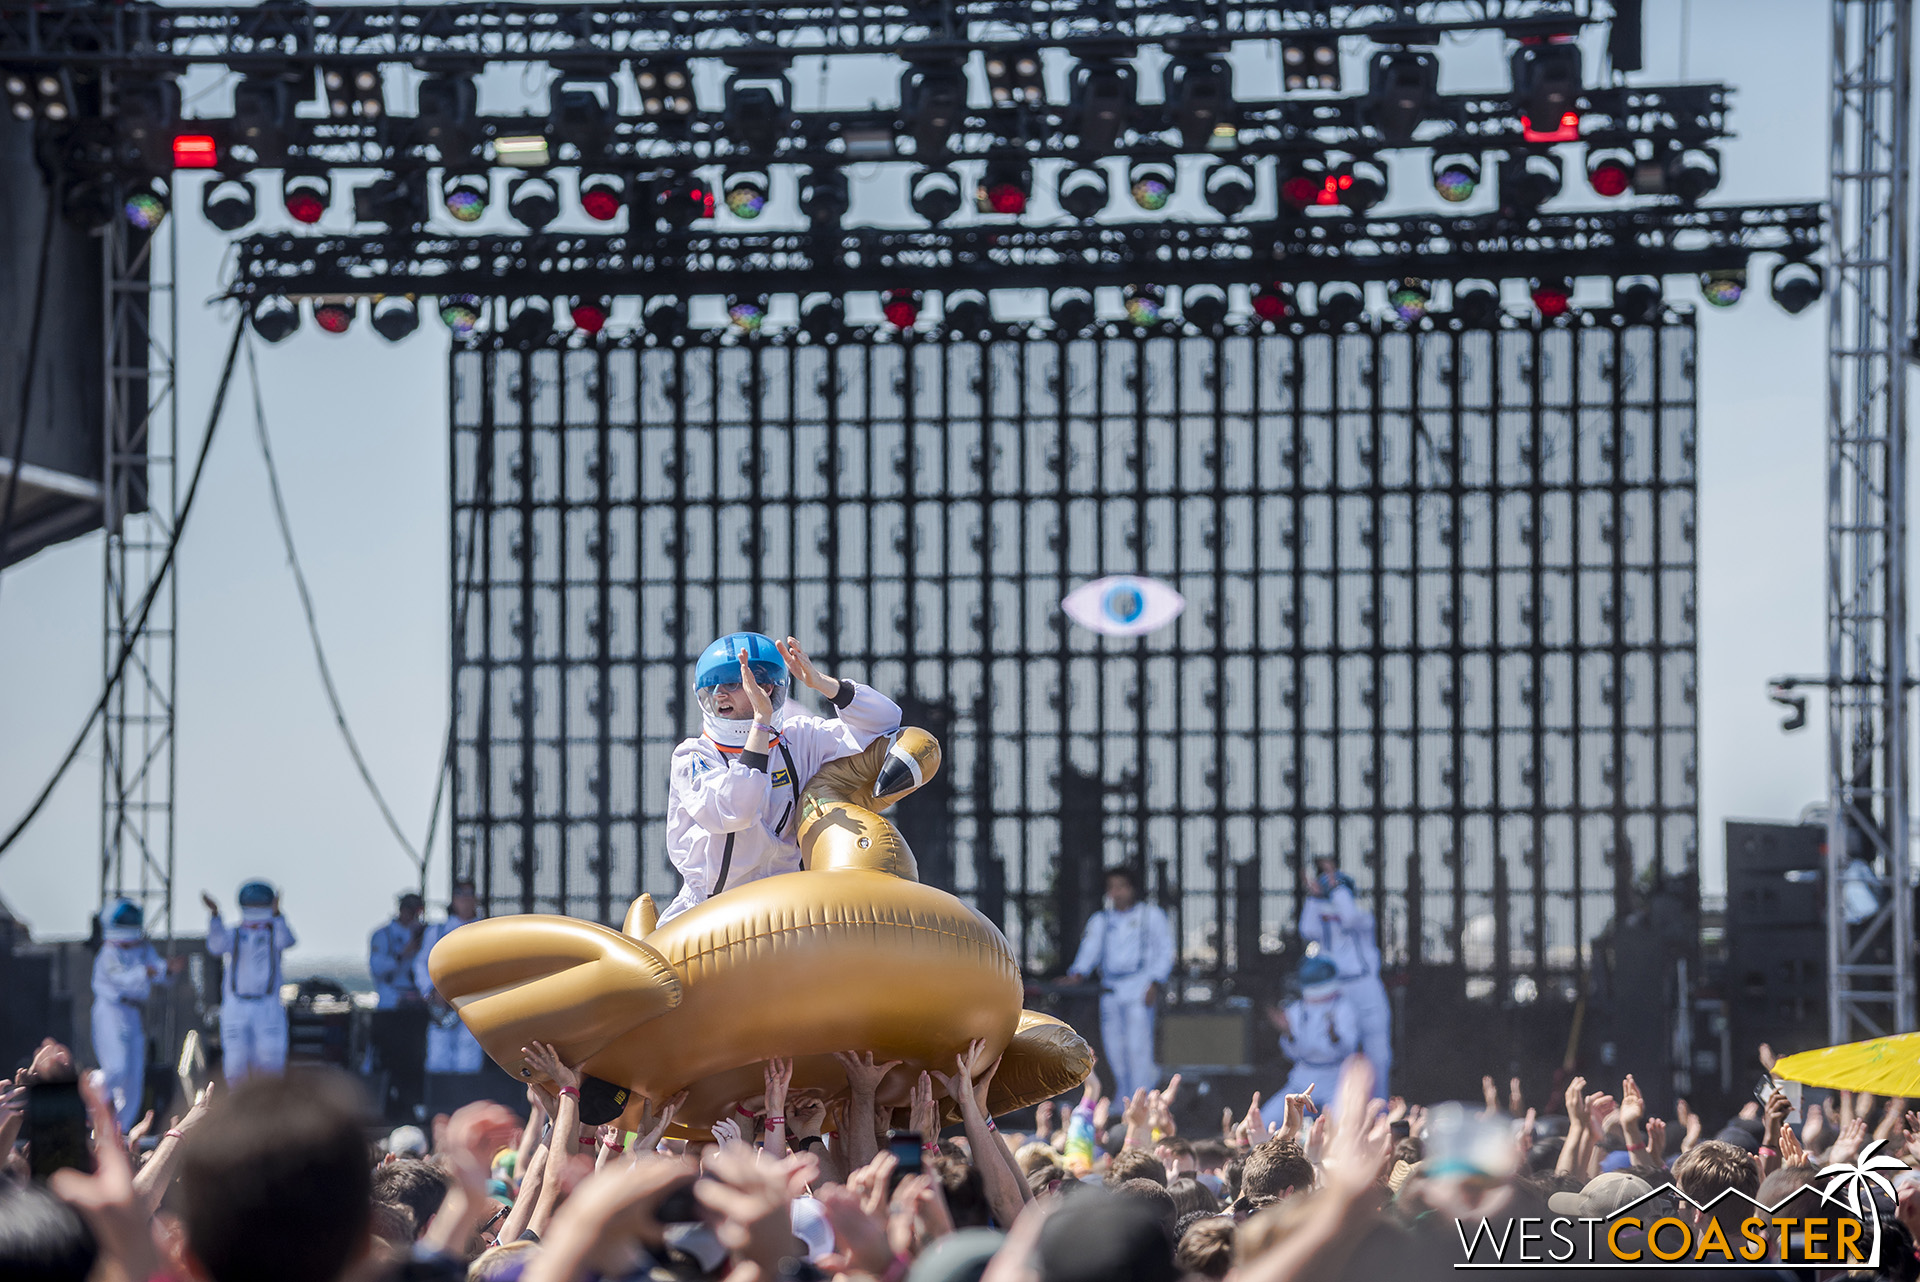 An astronaut golden dragon surfs the crowd during STRFKR's set.